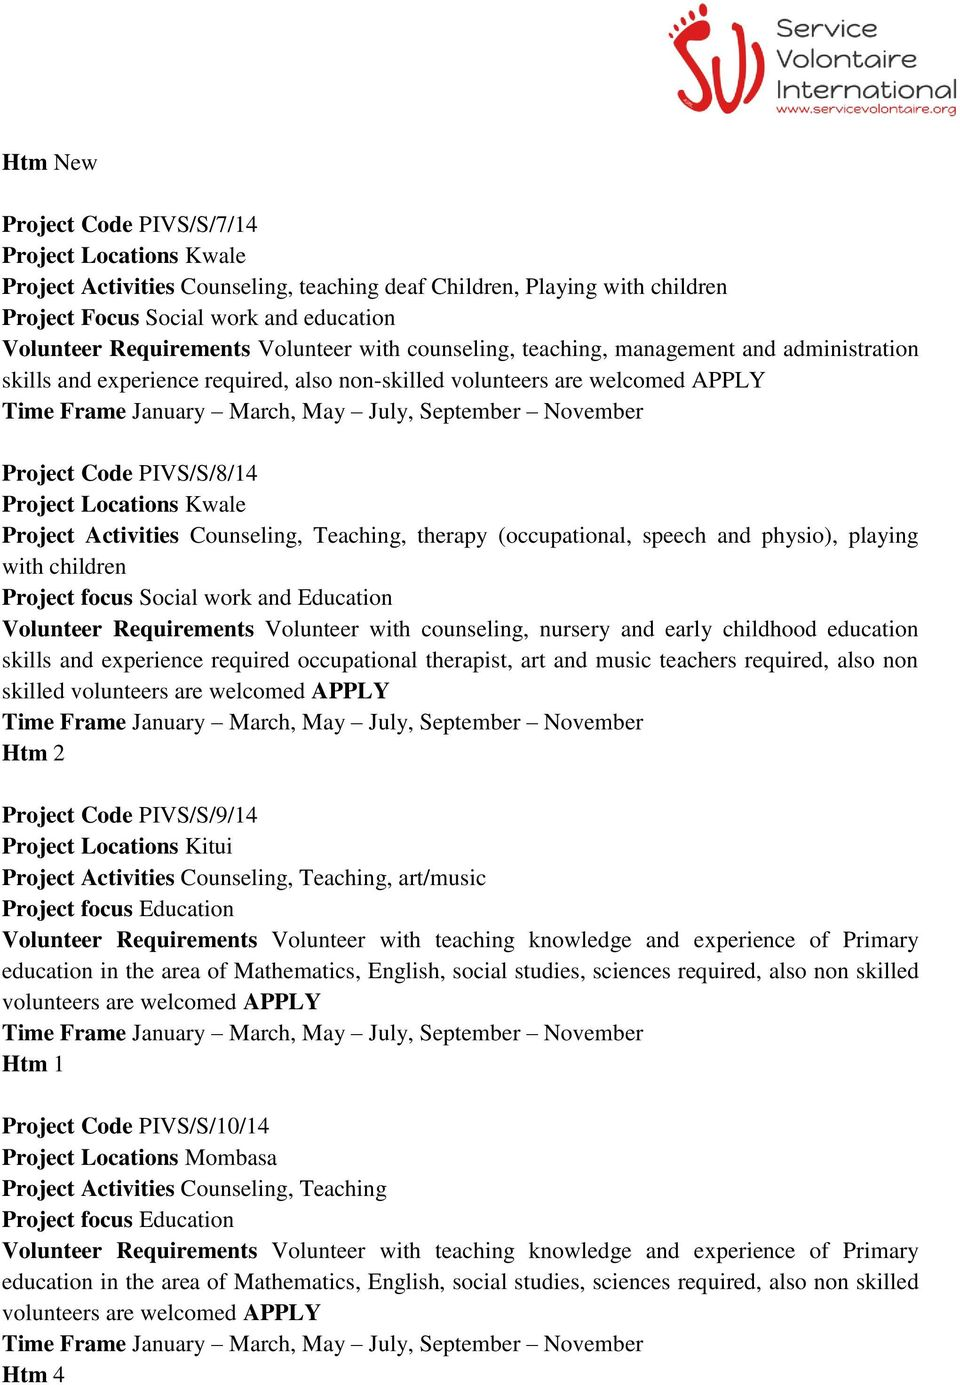 Project Activities Counseling, Teaching, therapy (occupational, speech and physio), playing with children Volunteer Requirements Volunteer with counseling, nursery and early childhood education